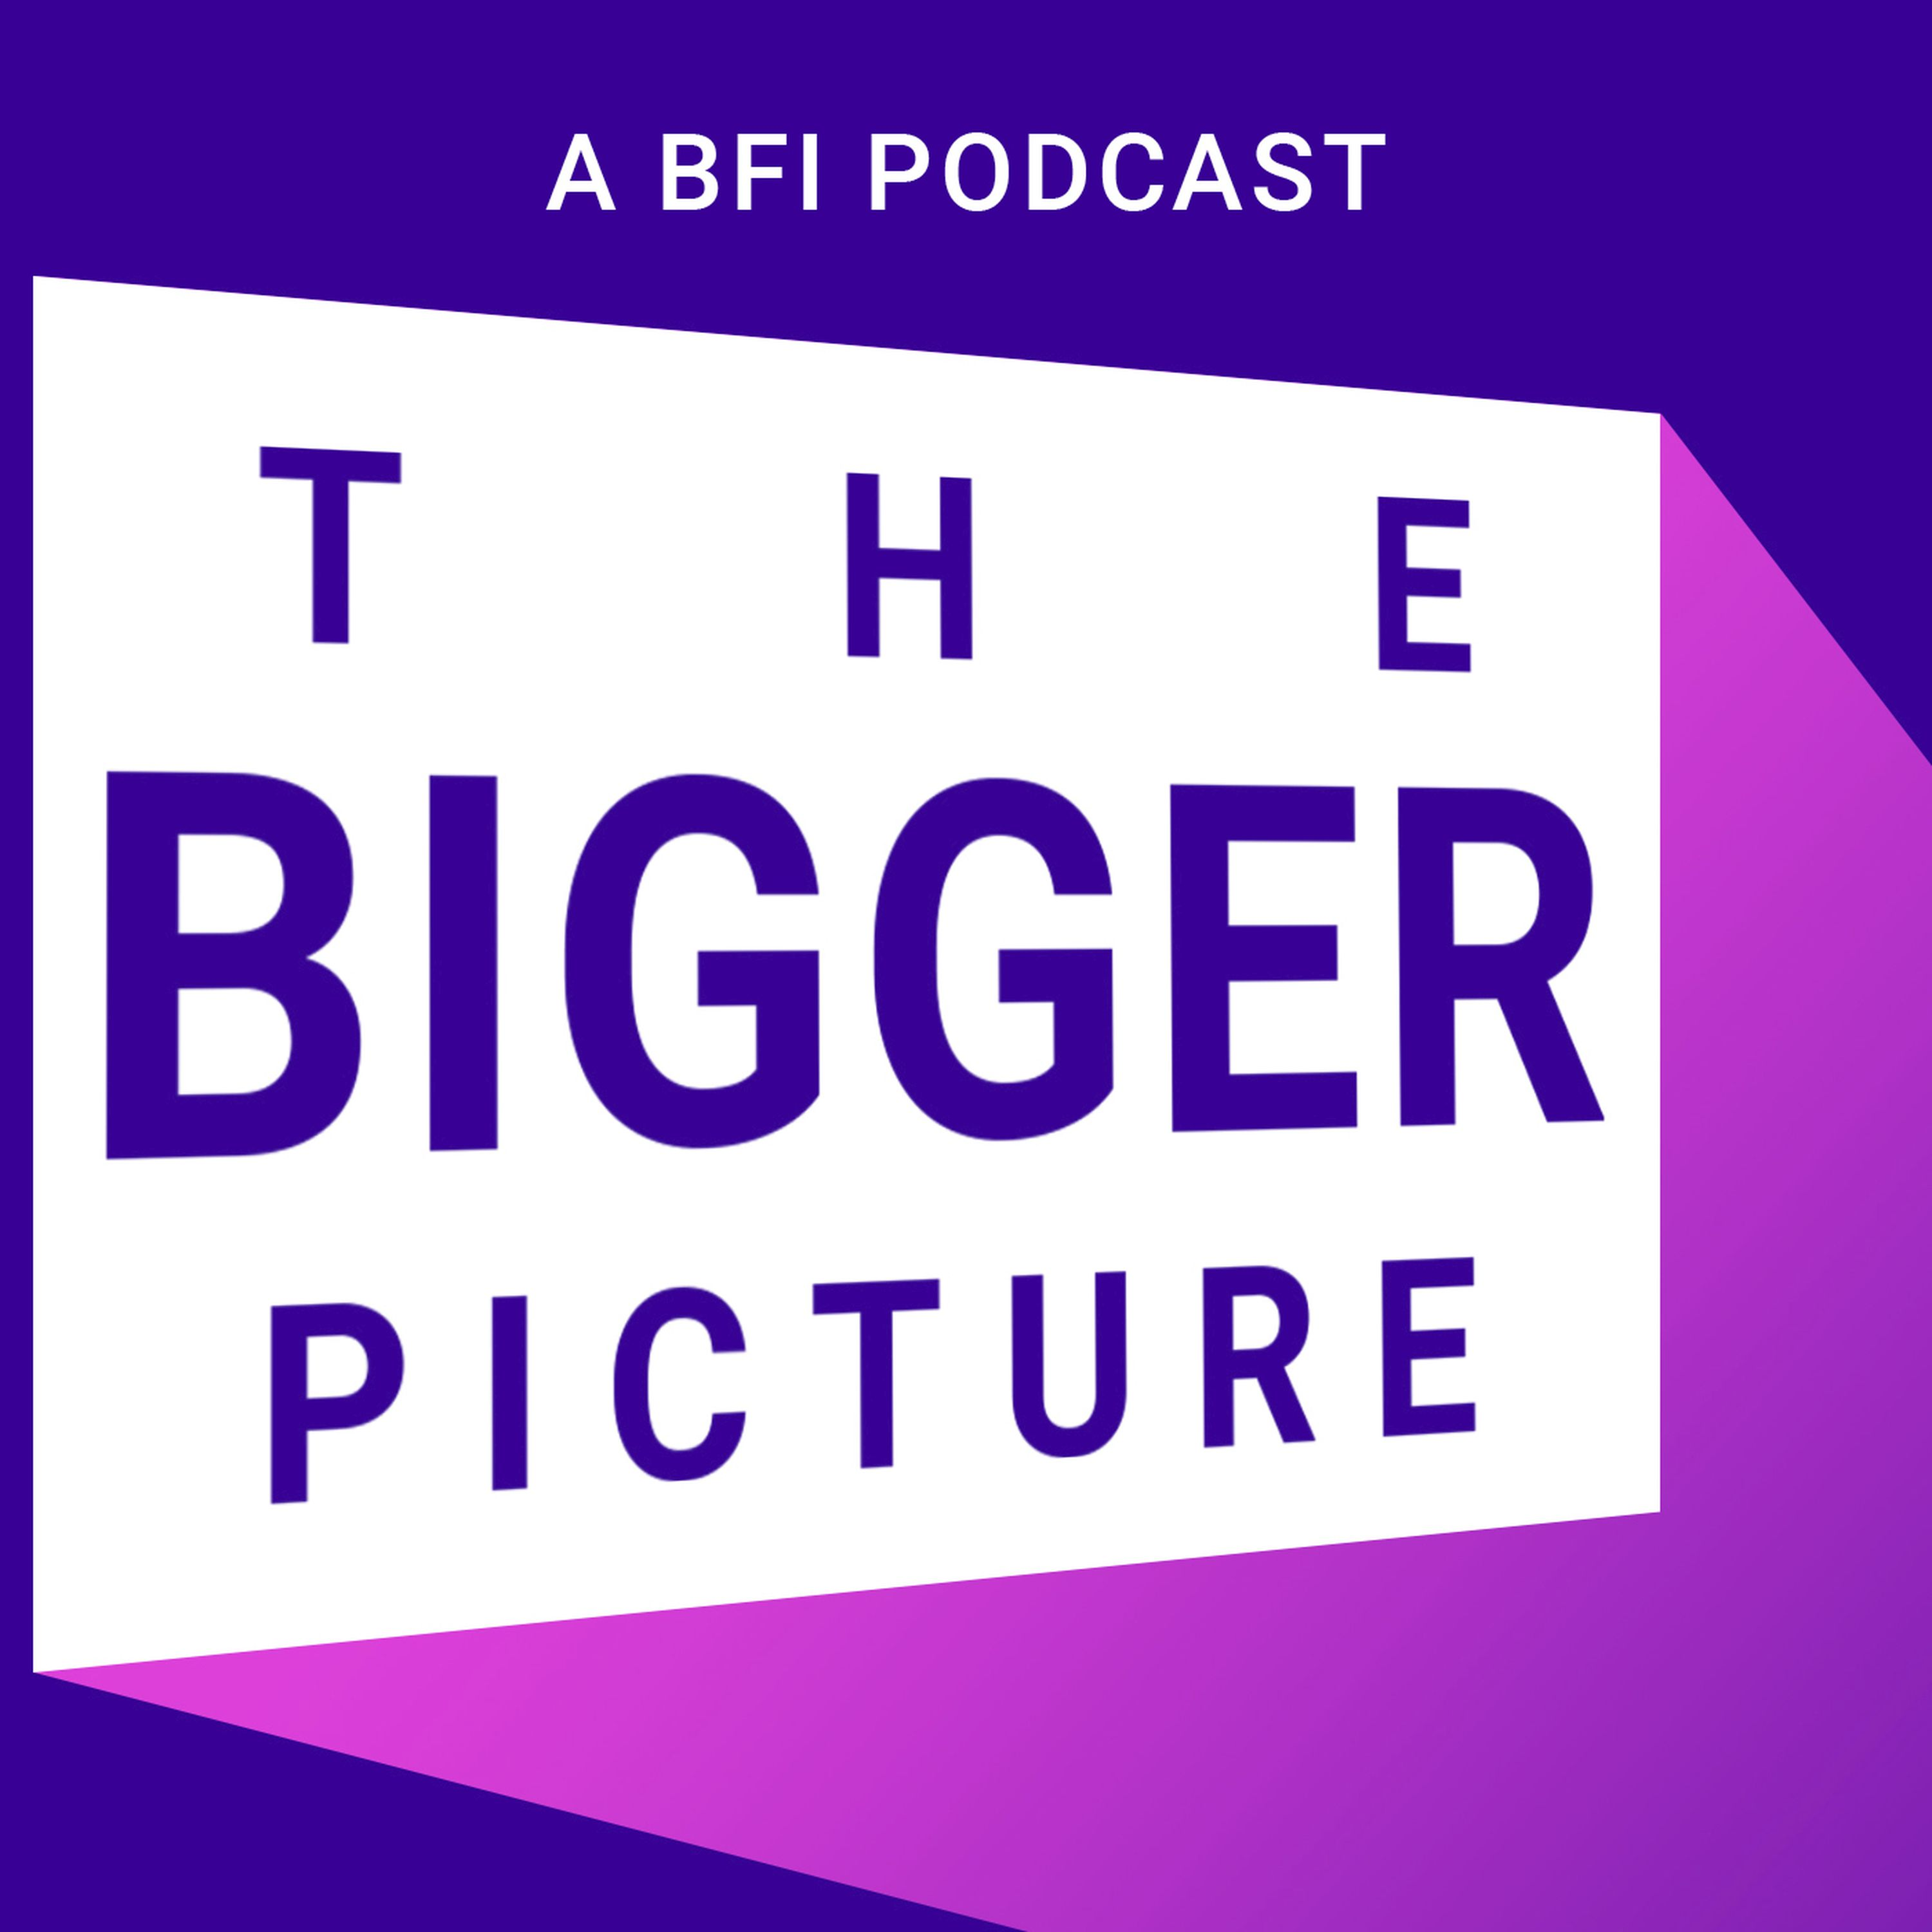 Little Women, instant friendship | The Bigger Picture, presented by The British Film Institute on acast